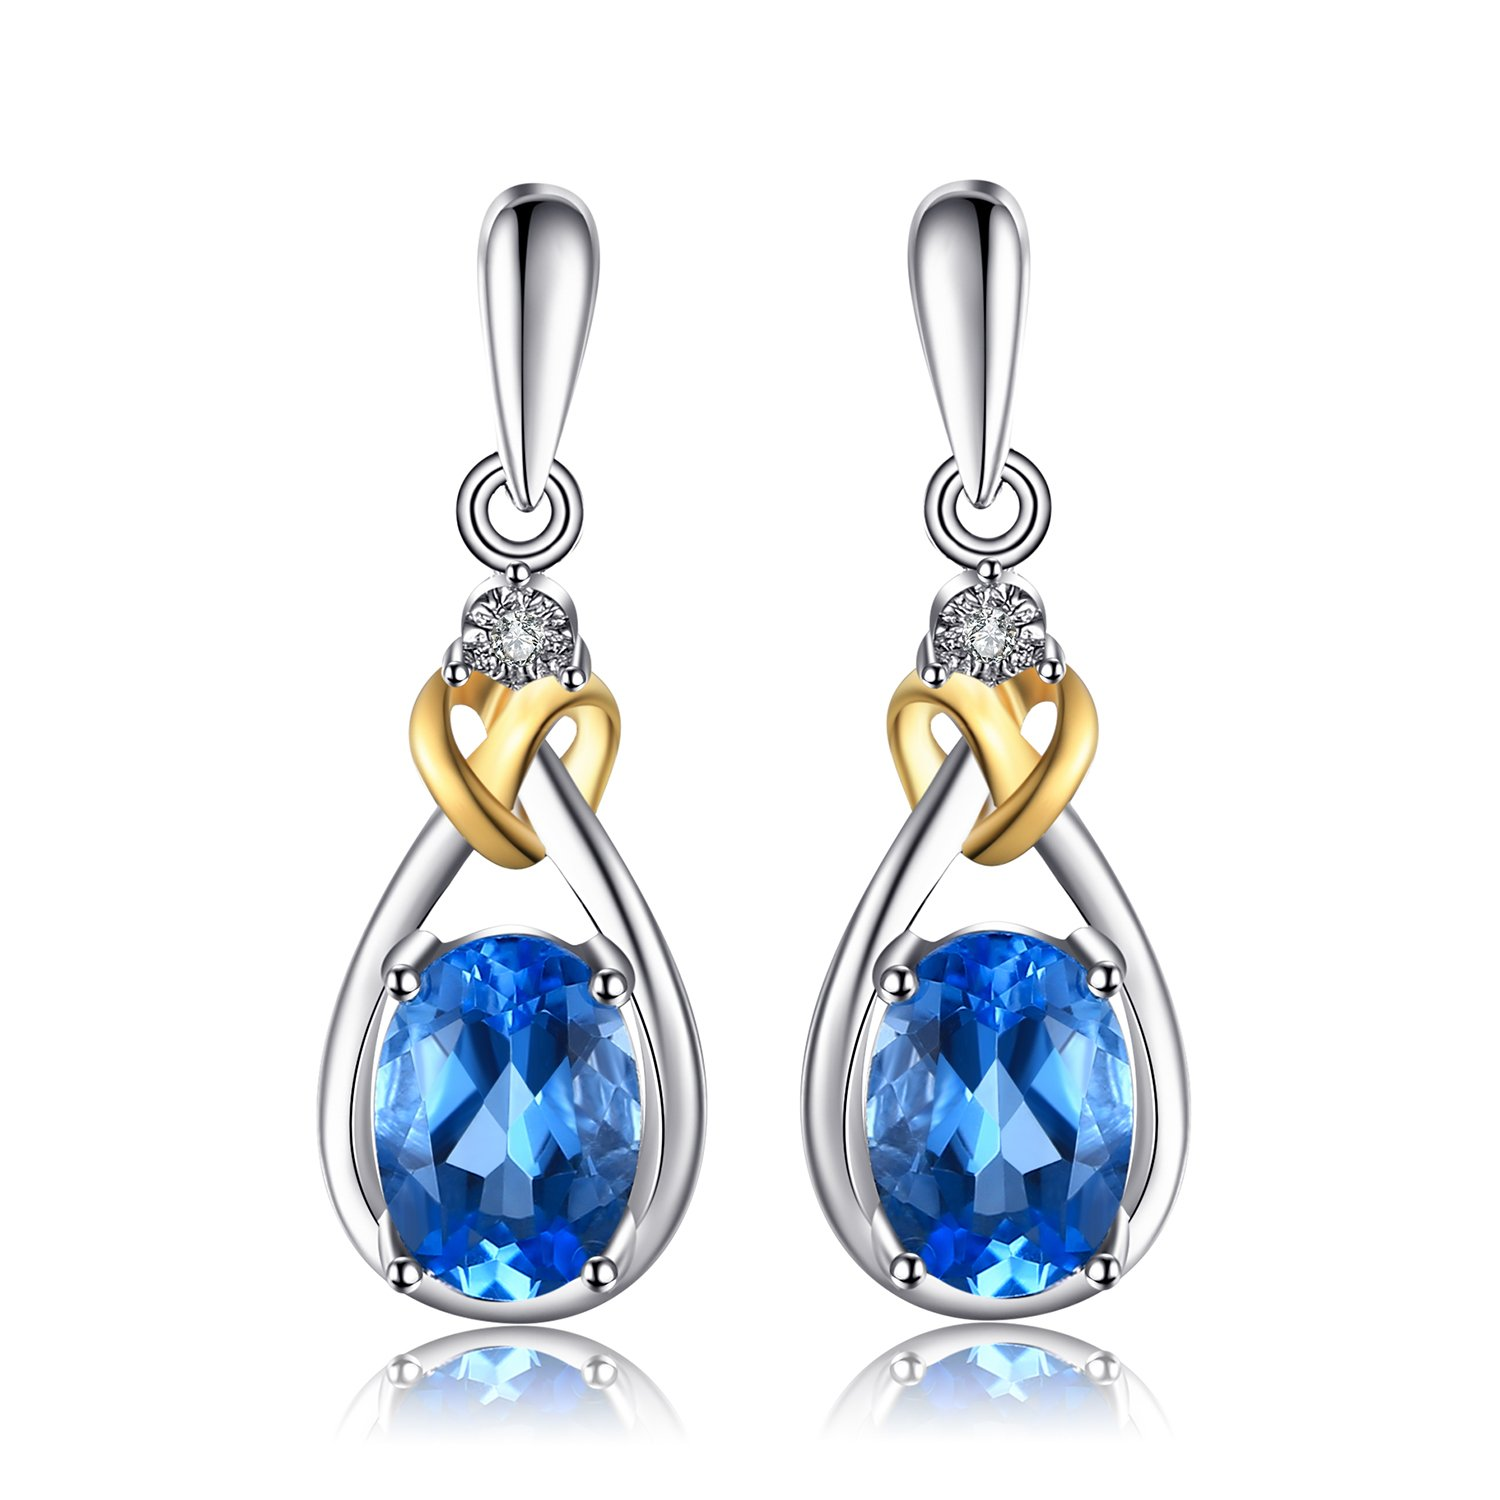 JewelryPalace Love Knot 1.9ct Natural Swiss Blue Topaz Diamond Accented 925 Sterling Silver 18K Gold Dangle Earrings CA-AJE000135